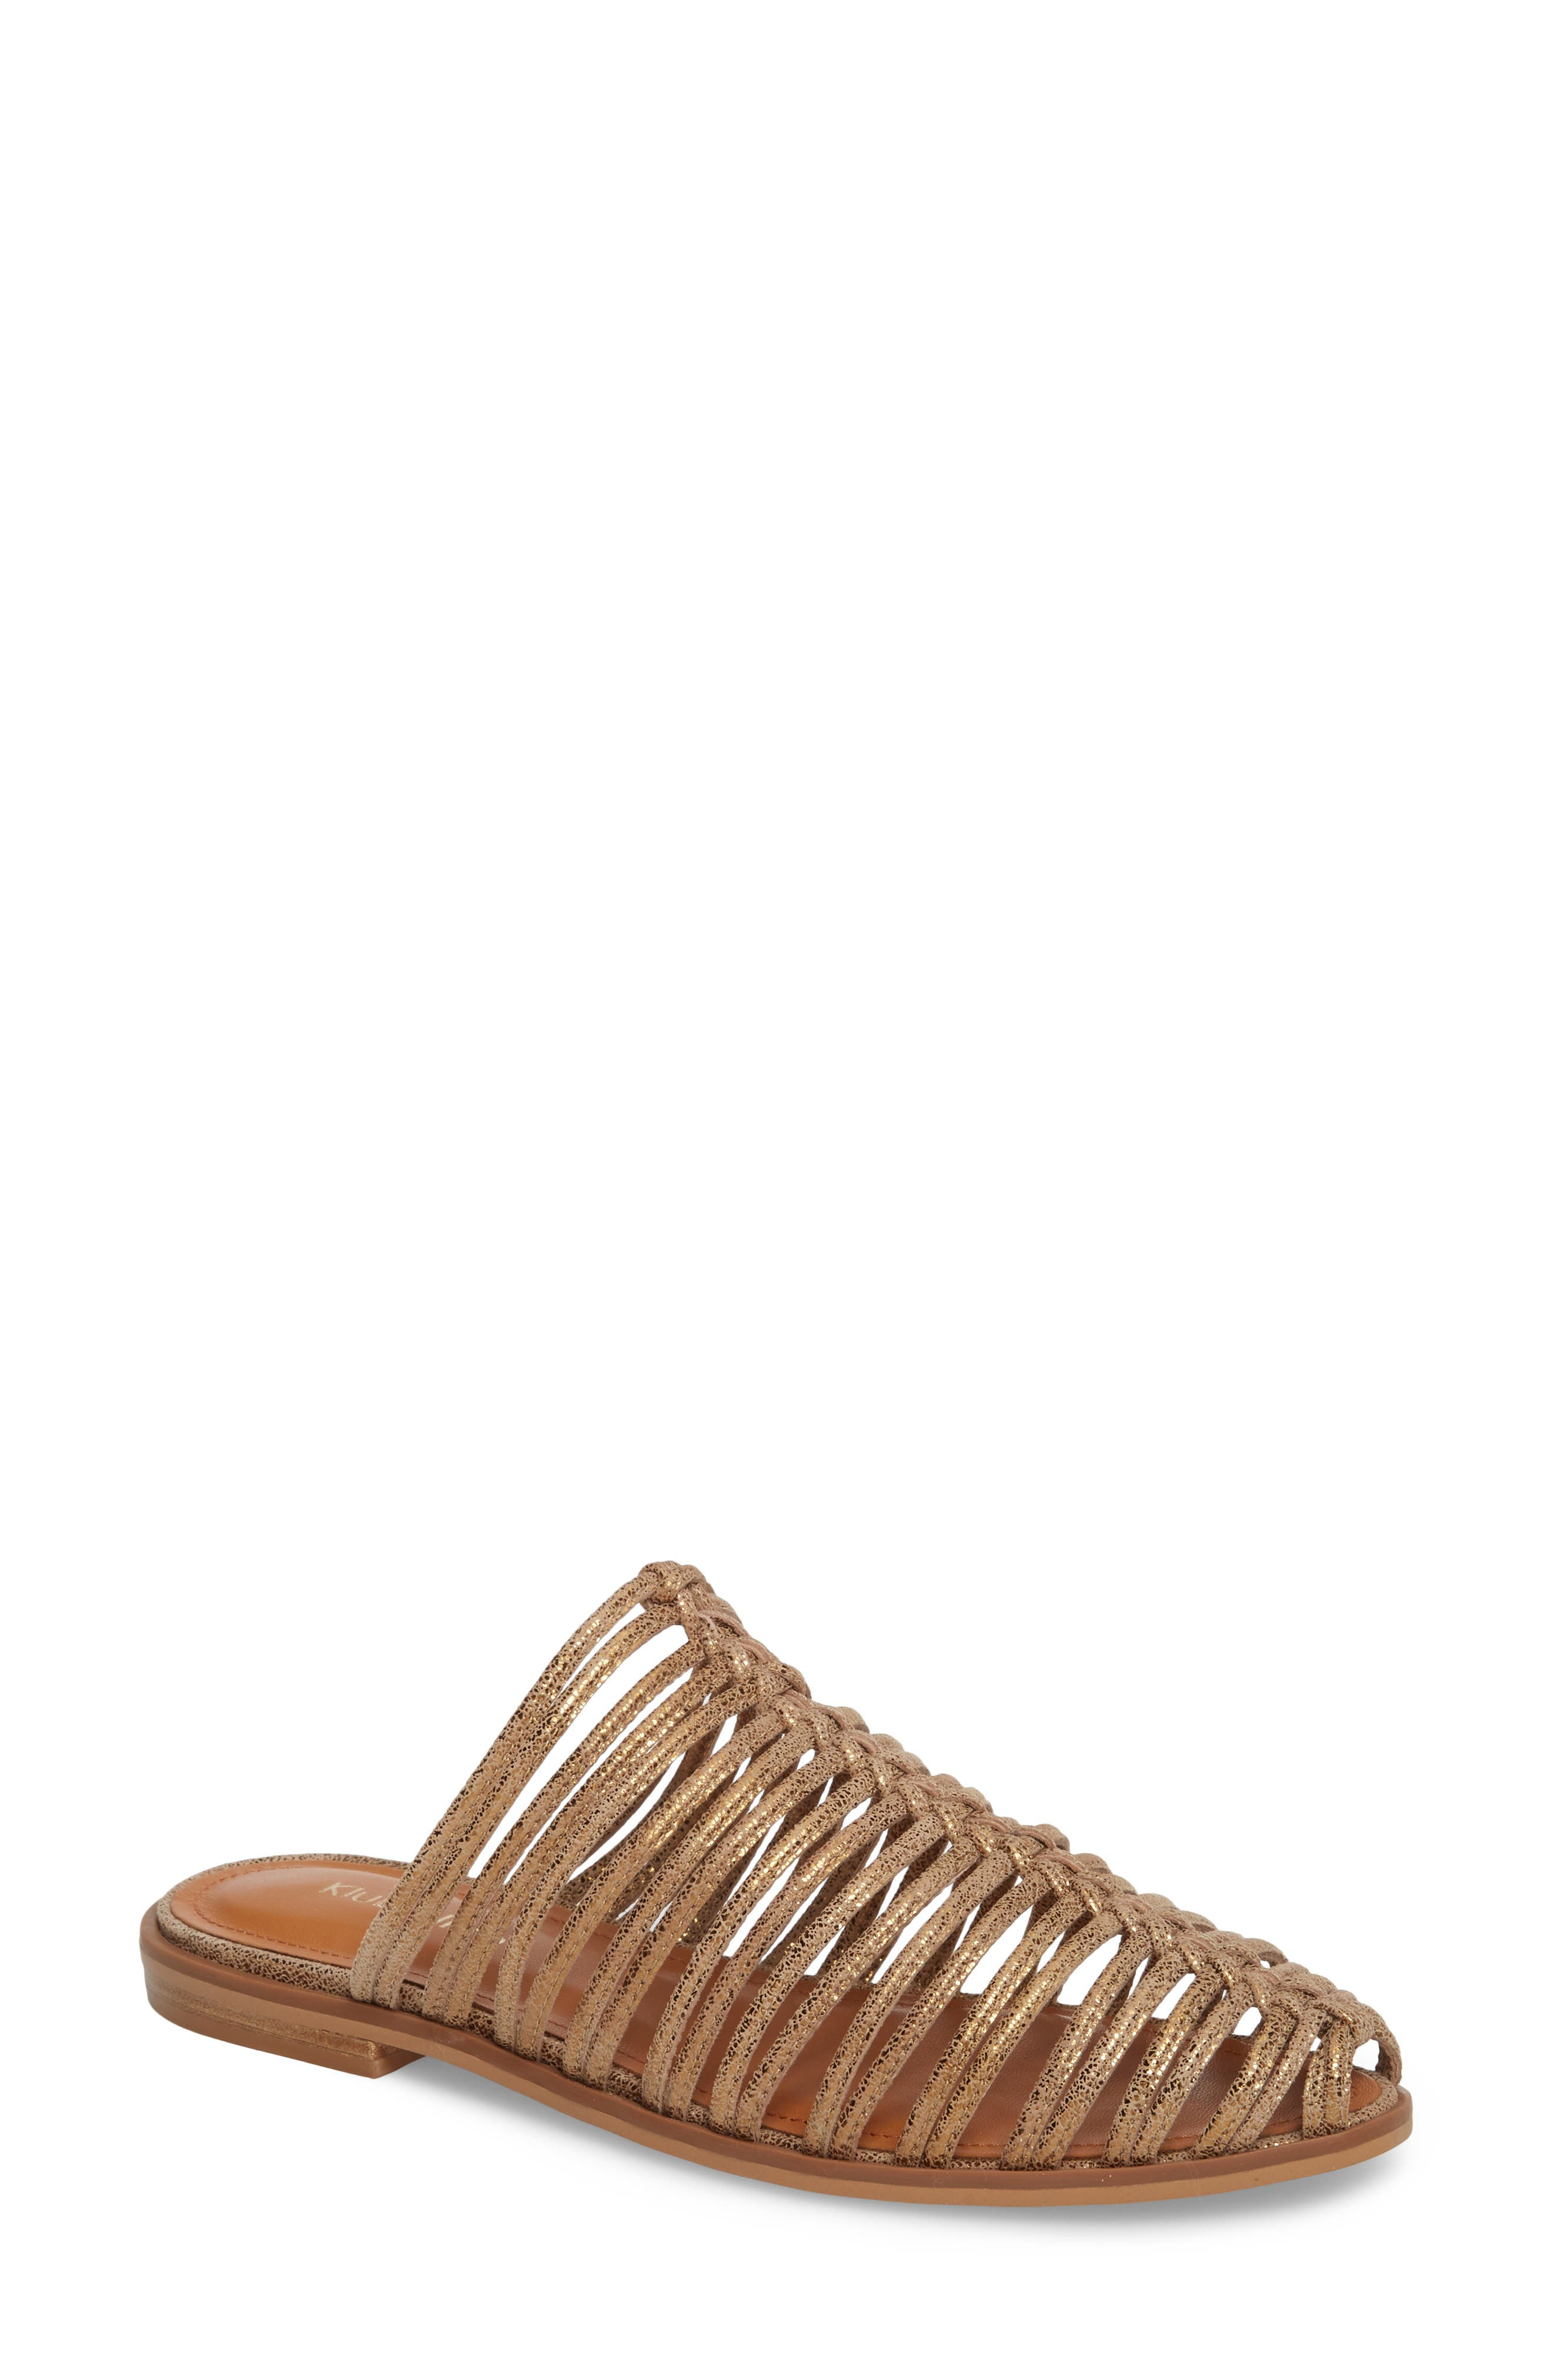 Geonna Sandal,                         Main,                         color, Bronze Suede